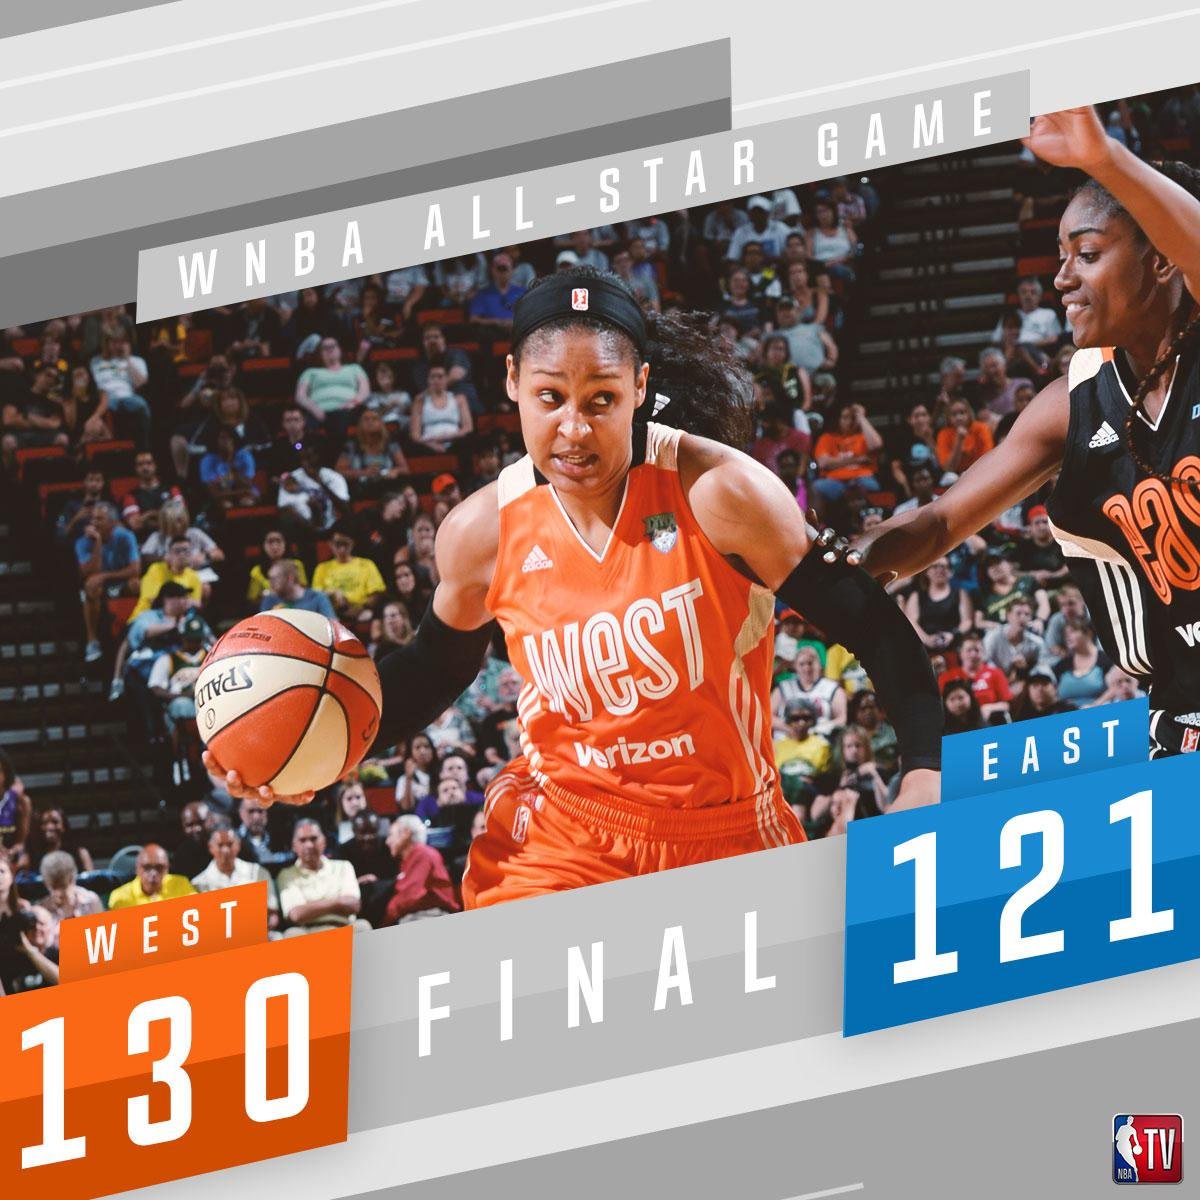 Maya Moore (23p) leads the West to a #WNBAAllStar game win!